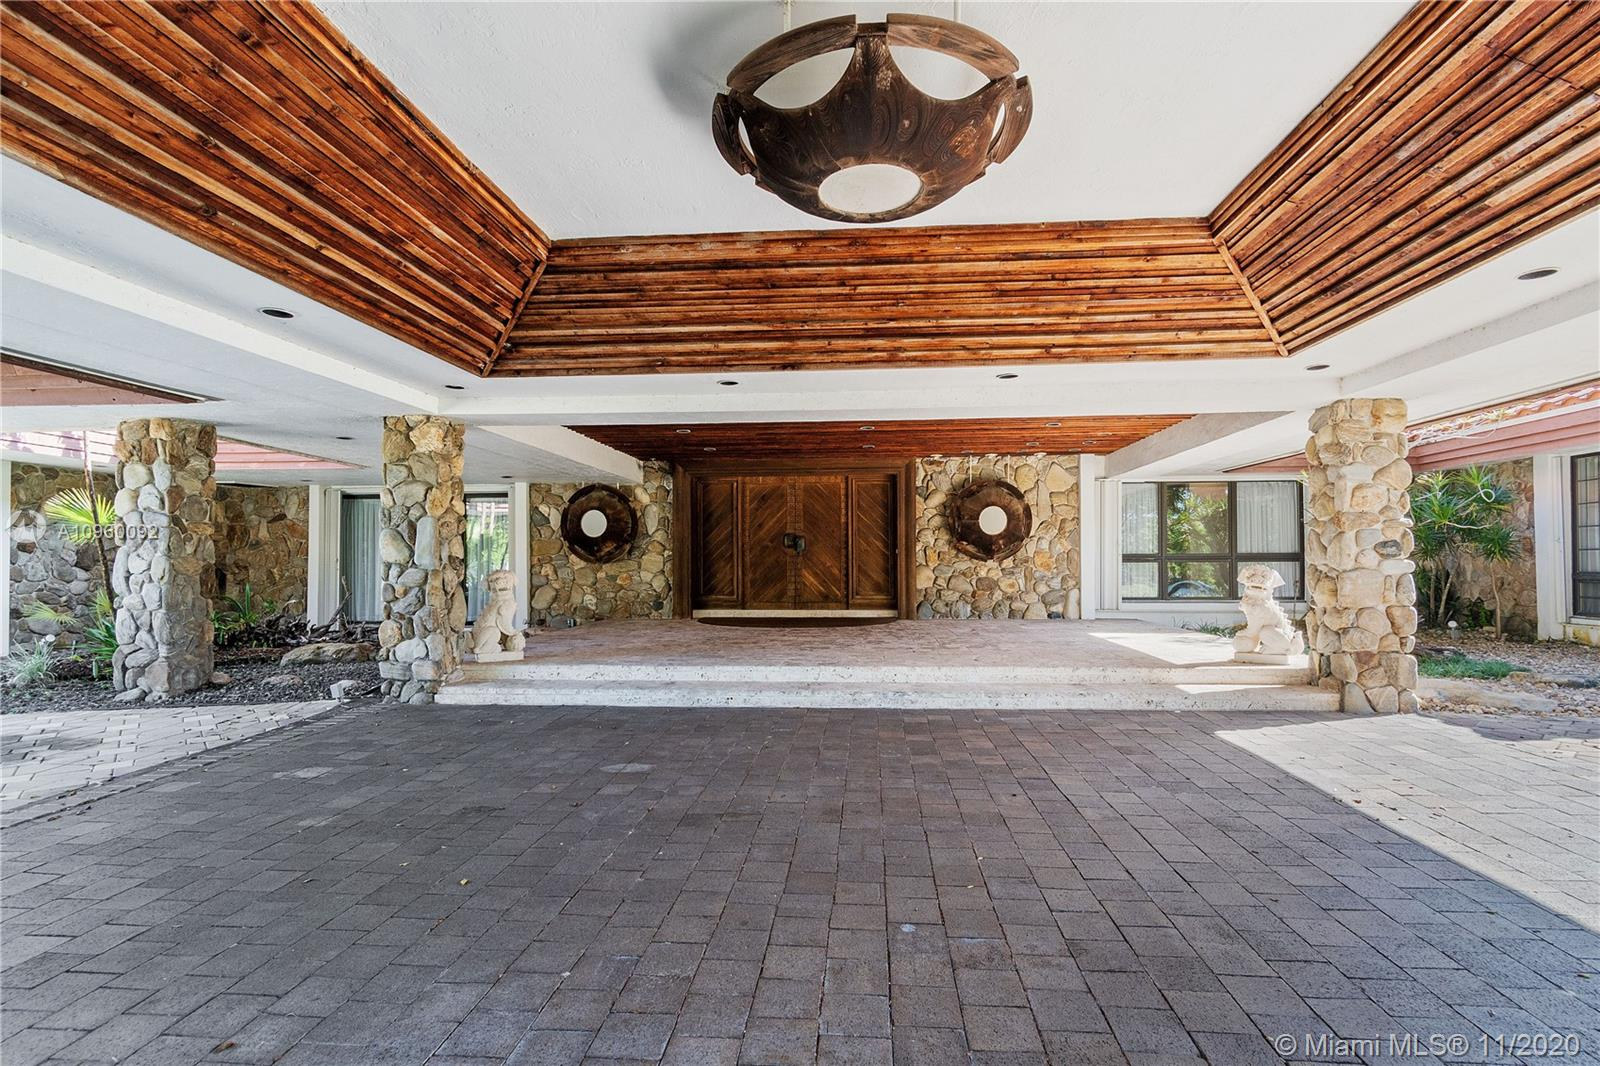 """This iconic Weston home affectionately nicknamed the """"House with The Horses"""" could be yours. This mansion sits on a large estate with a vast lake frontage and luscious vegetation. The centerpiece of the living room is a massive stone fireplace that culminates into a cowhide-covered ceiling. You truly feel like you are standing in an African Safari Lodge. The backyard has a pool, a large chess set, and a pair of gazebos. One gazebo has 2 bedrooms of its own, and a full bathroom, while the second gazebo has 1 bedroom, a full bathroom, and a kitchen. Unique to this Weston mansion is a walk-in safe that can be utilized as a safe room. The master bedroom's walk-in closets are lined with Cedarwood. The driveway leads you to the magnificent wooden entrance of the mansion or to a 3-car garage."""